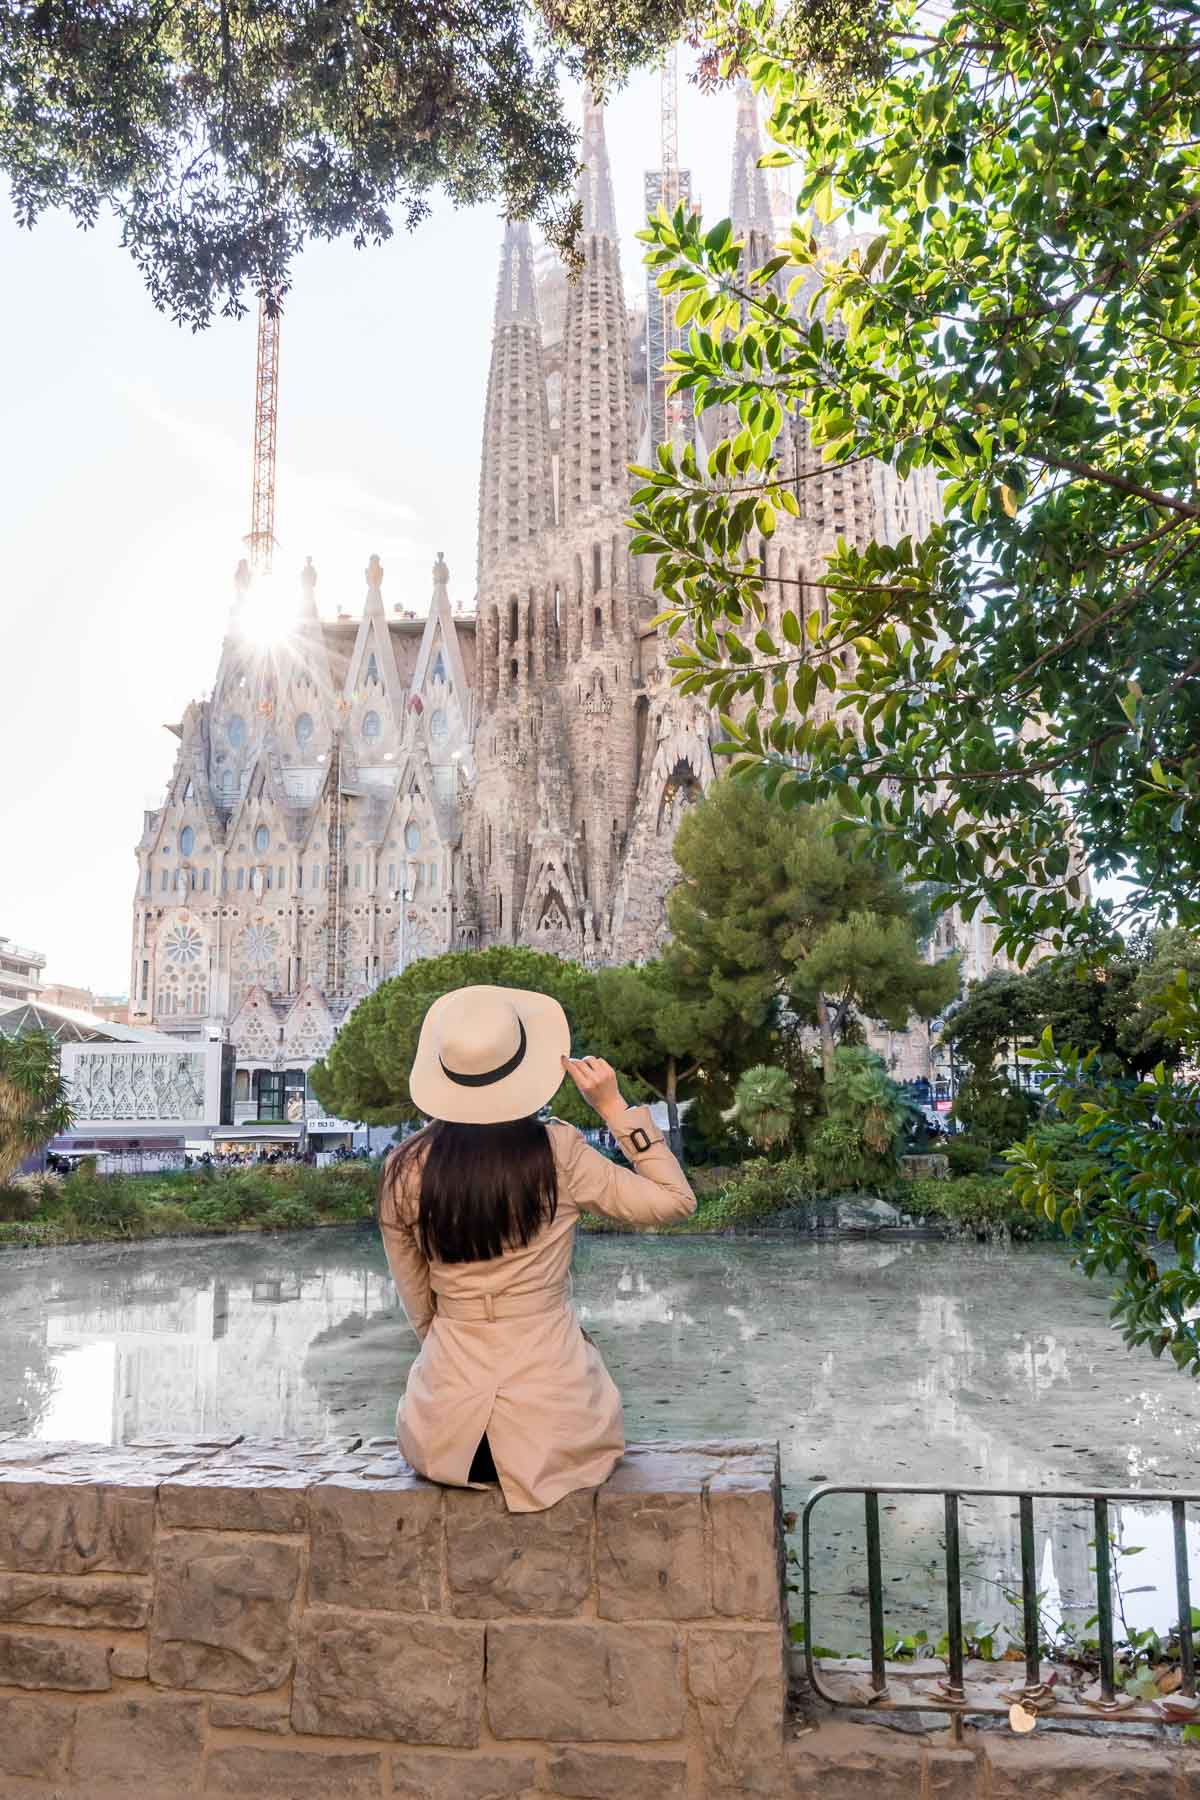 Girl in a hat and a trench coat sitting in front of the Sagrada Familia in Barcelona